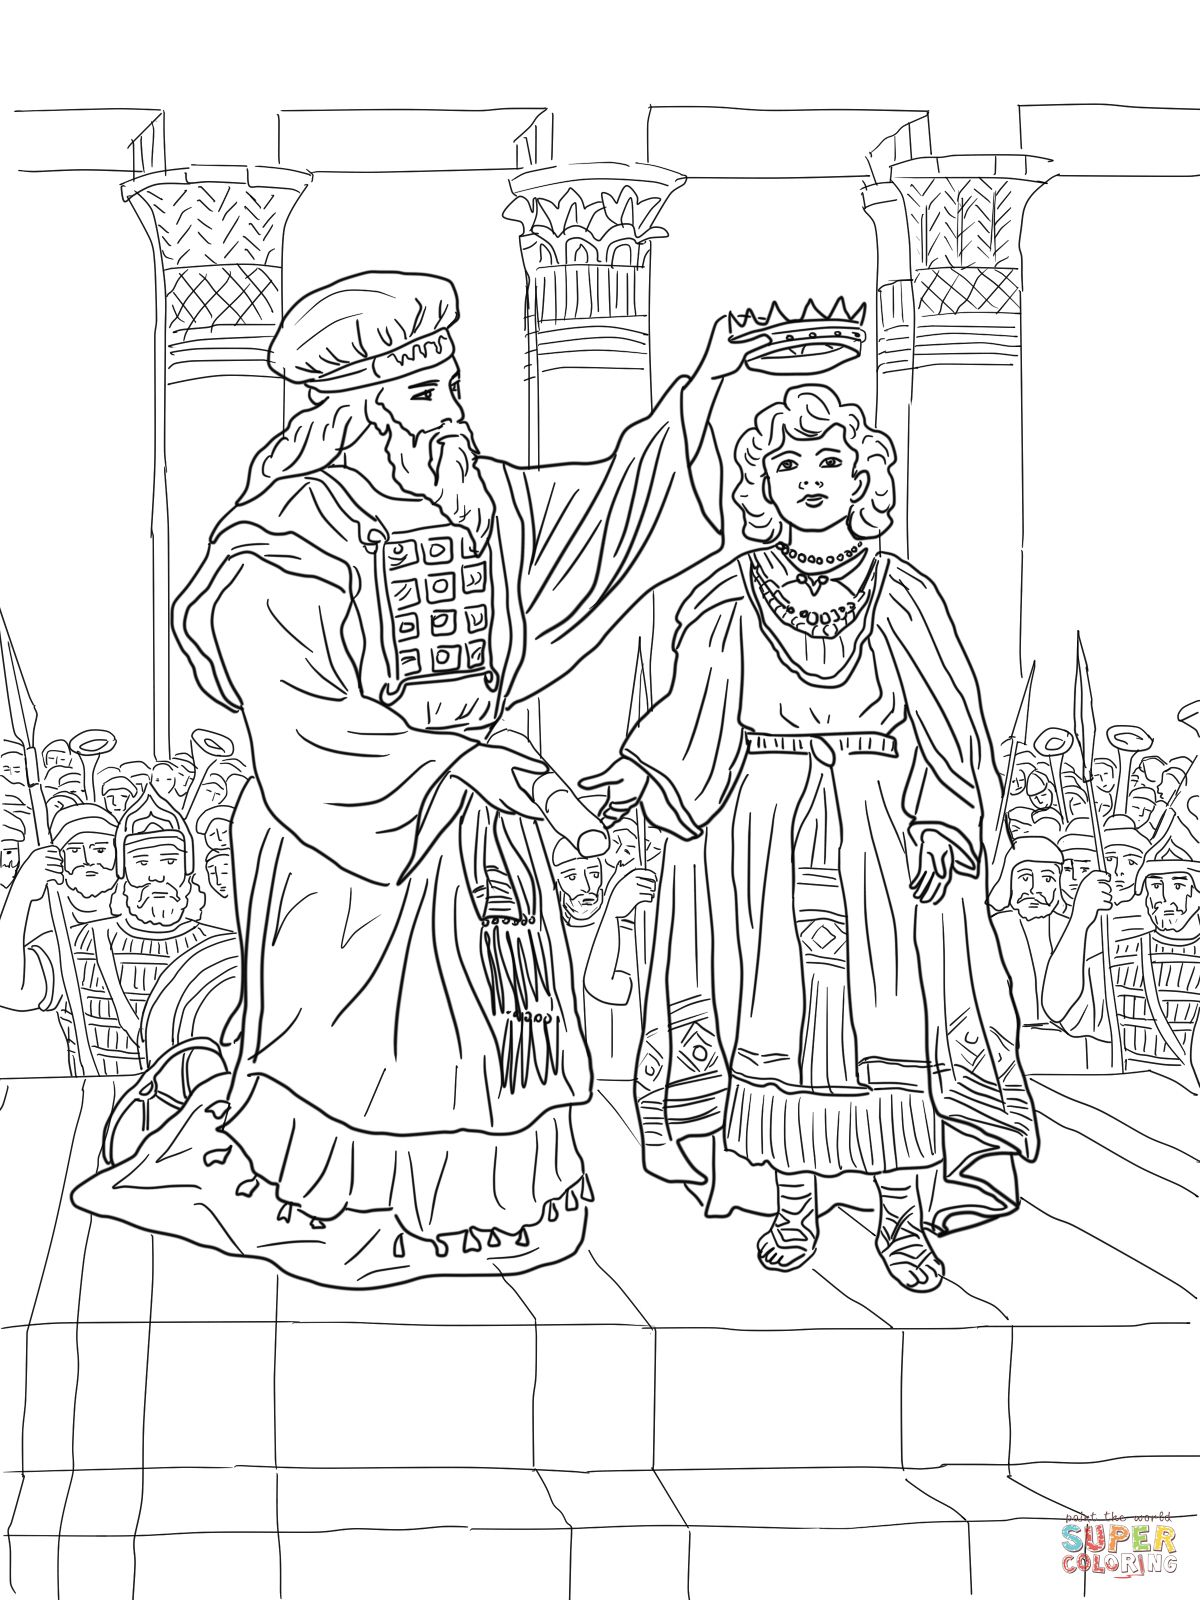 King Joash Crowned coloring page | SuperColoring.com | Divided ...